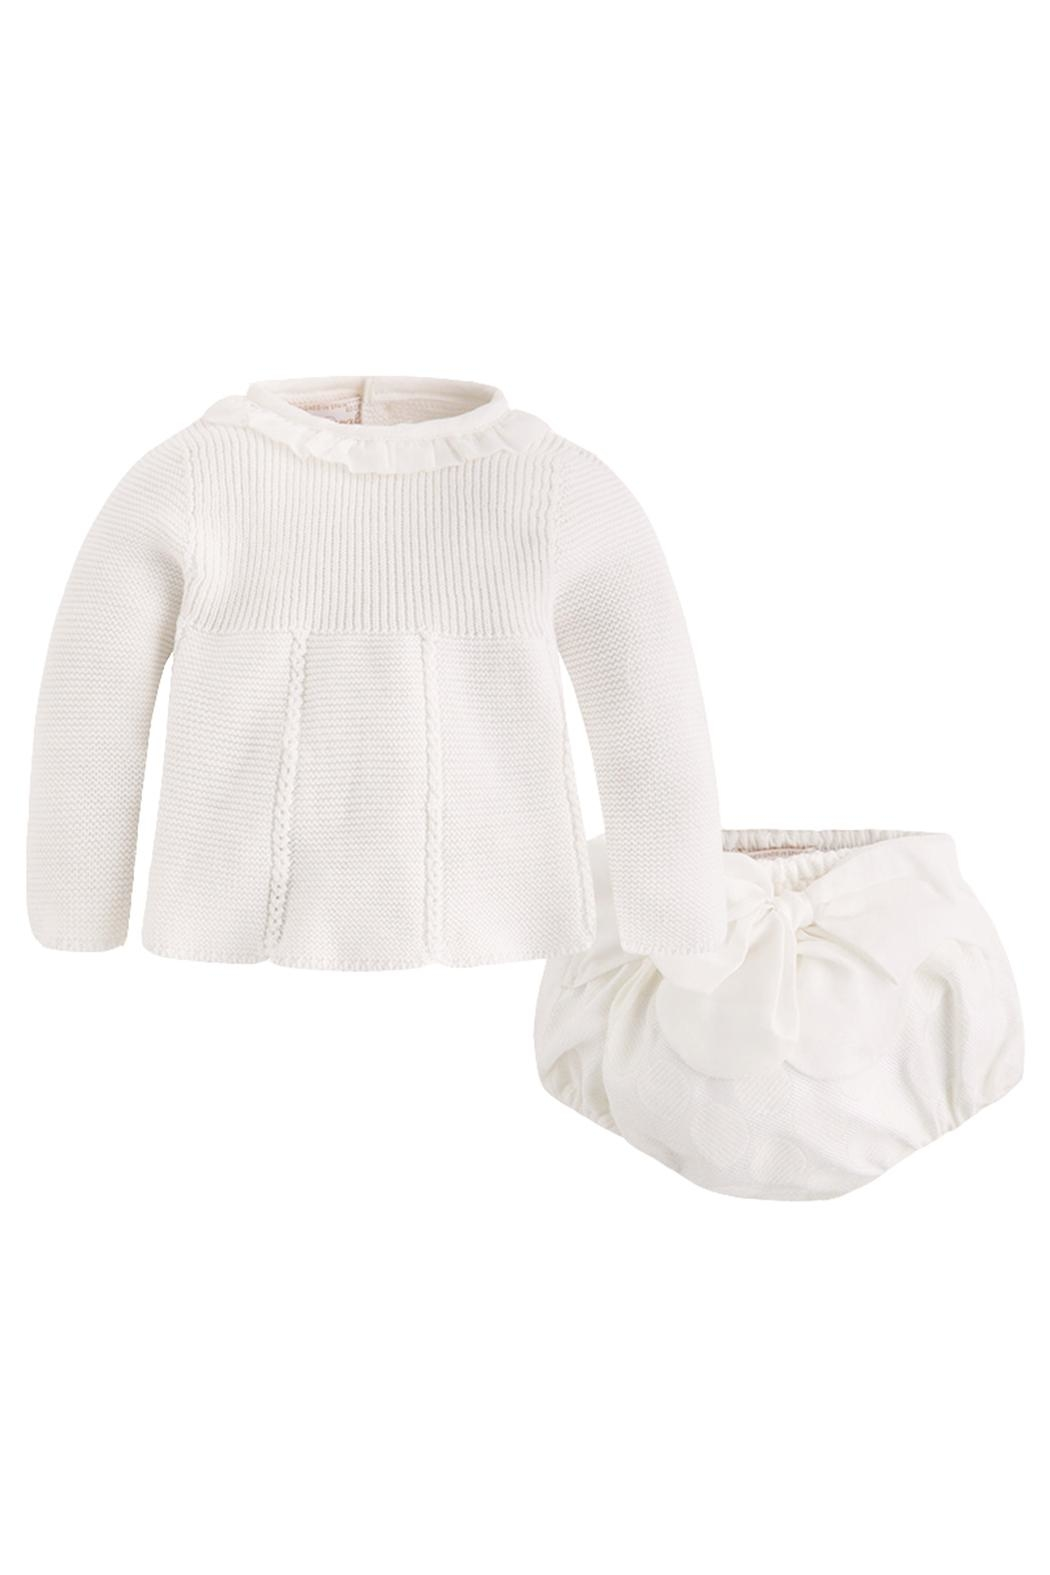 9b91363a7 Mayoral Ivory Sweater bloomer Set from Louisiana by KK s Giving Tree ...